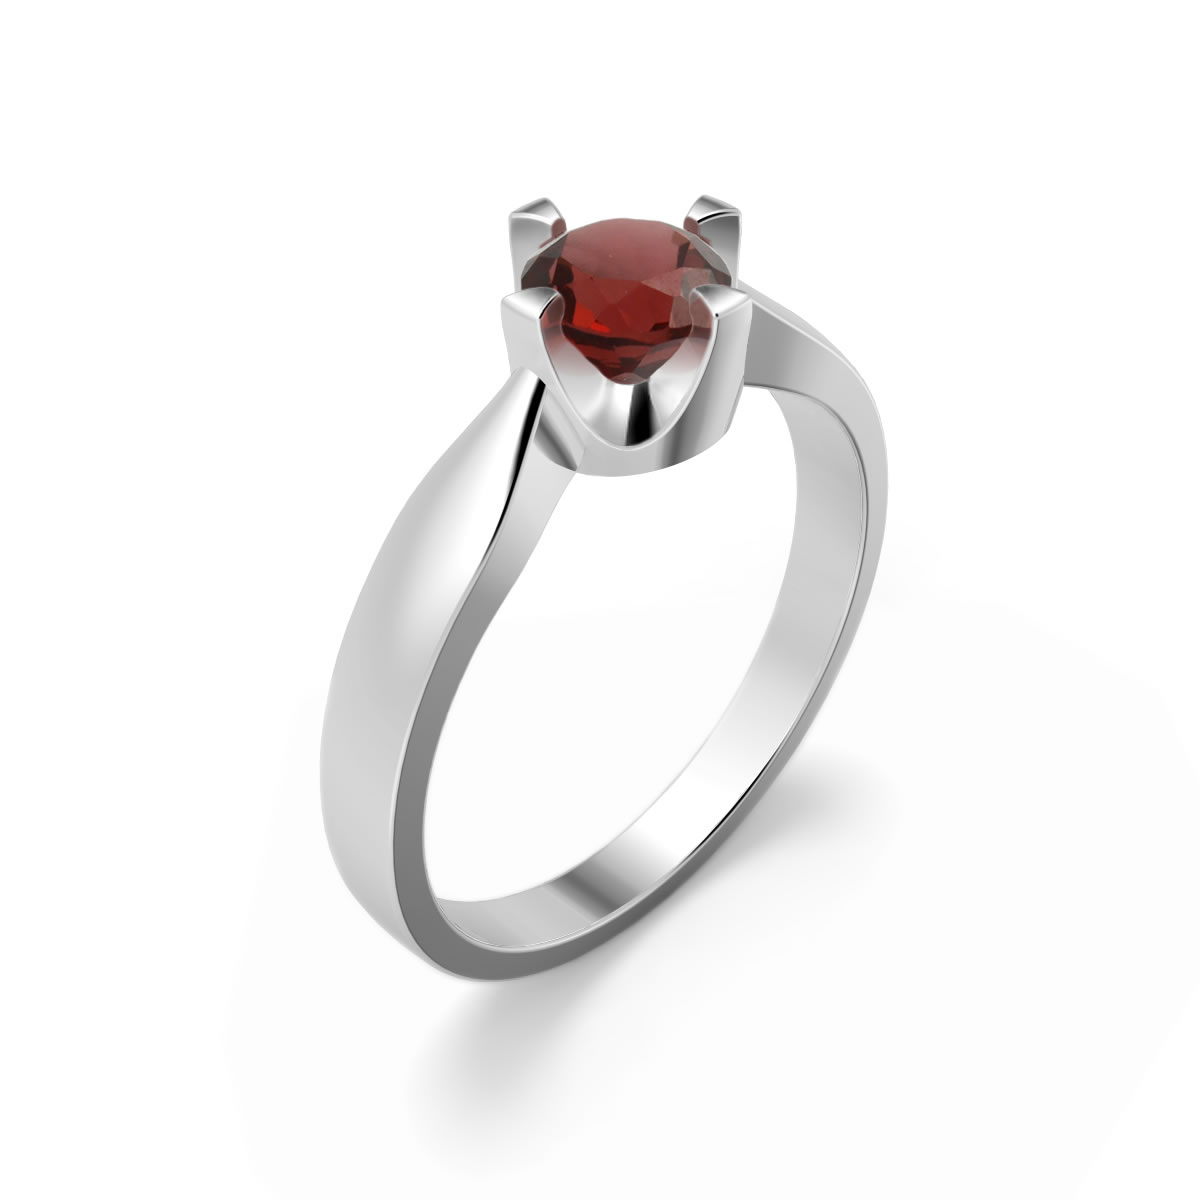 Elegant ring in sterling silver with a